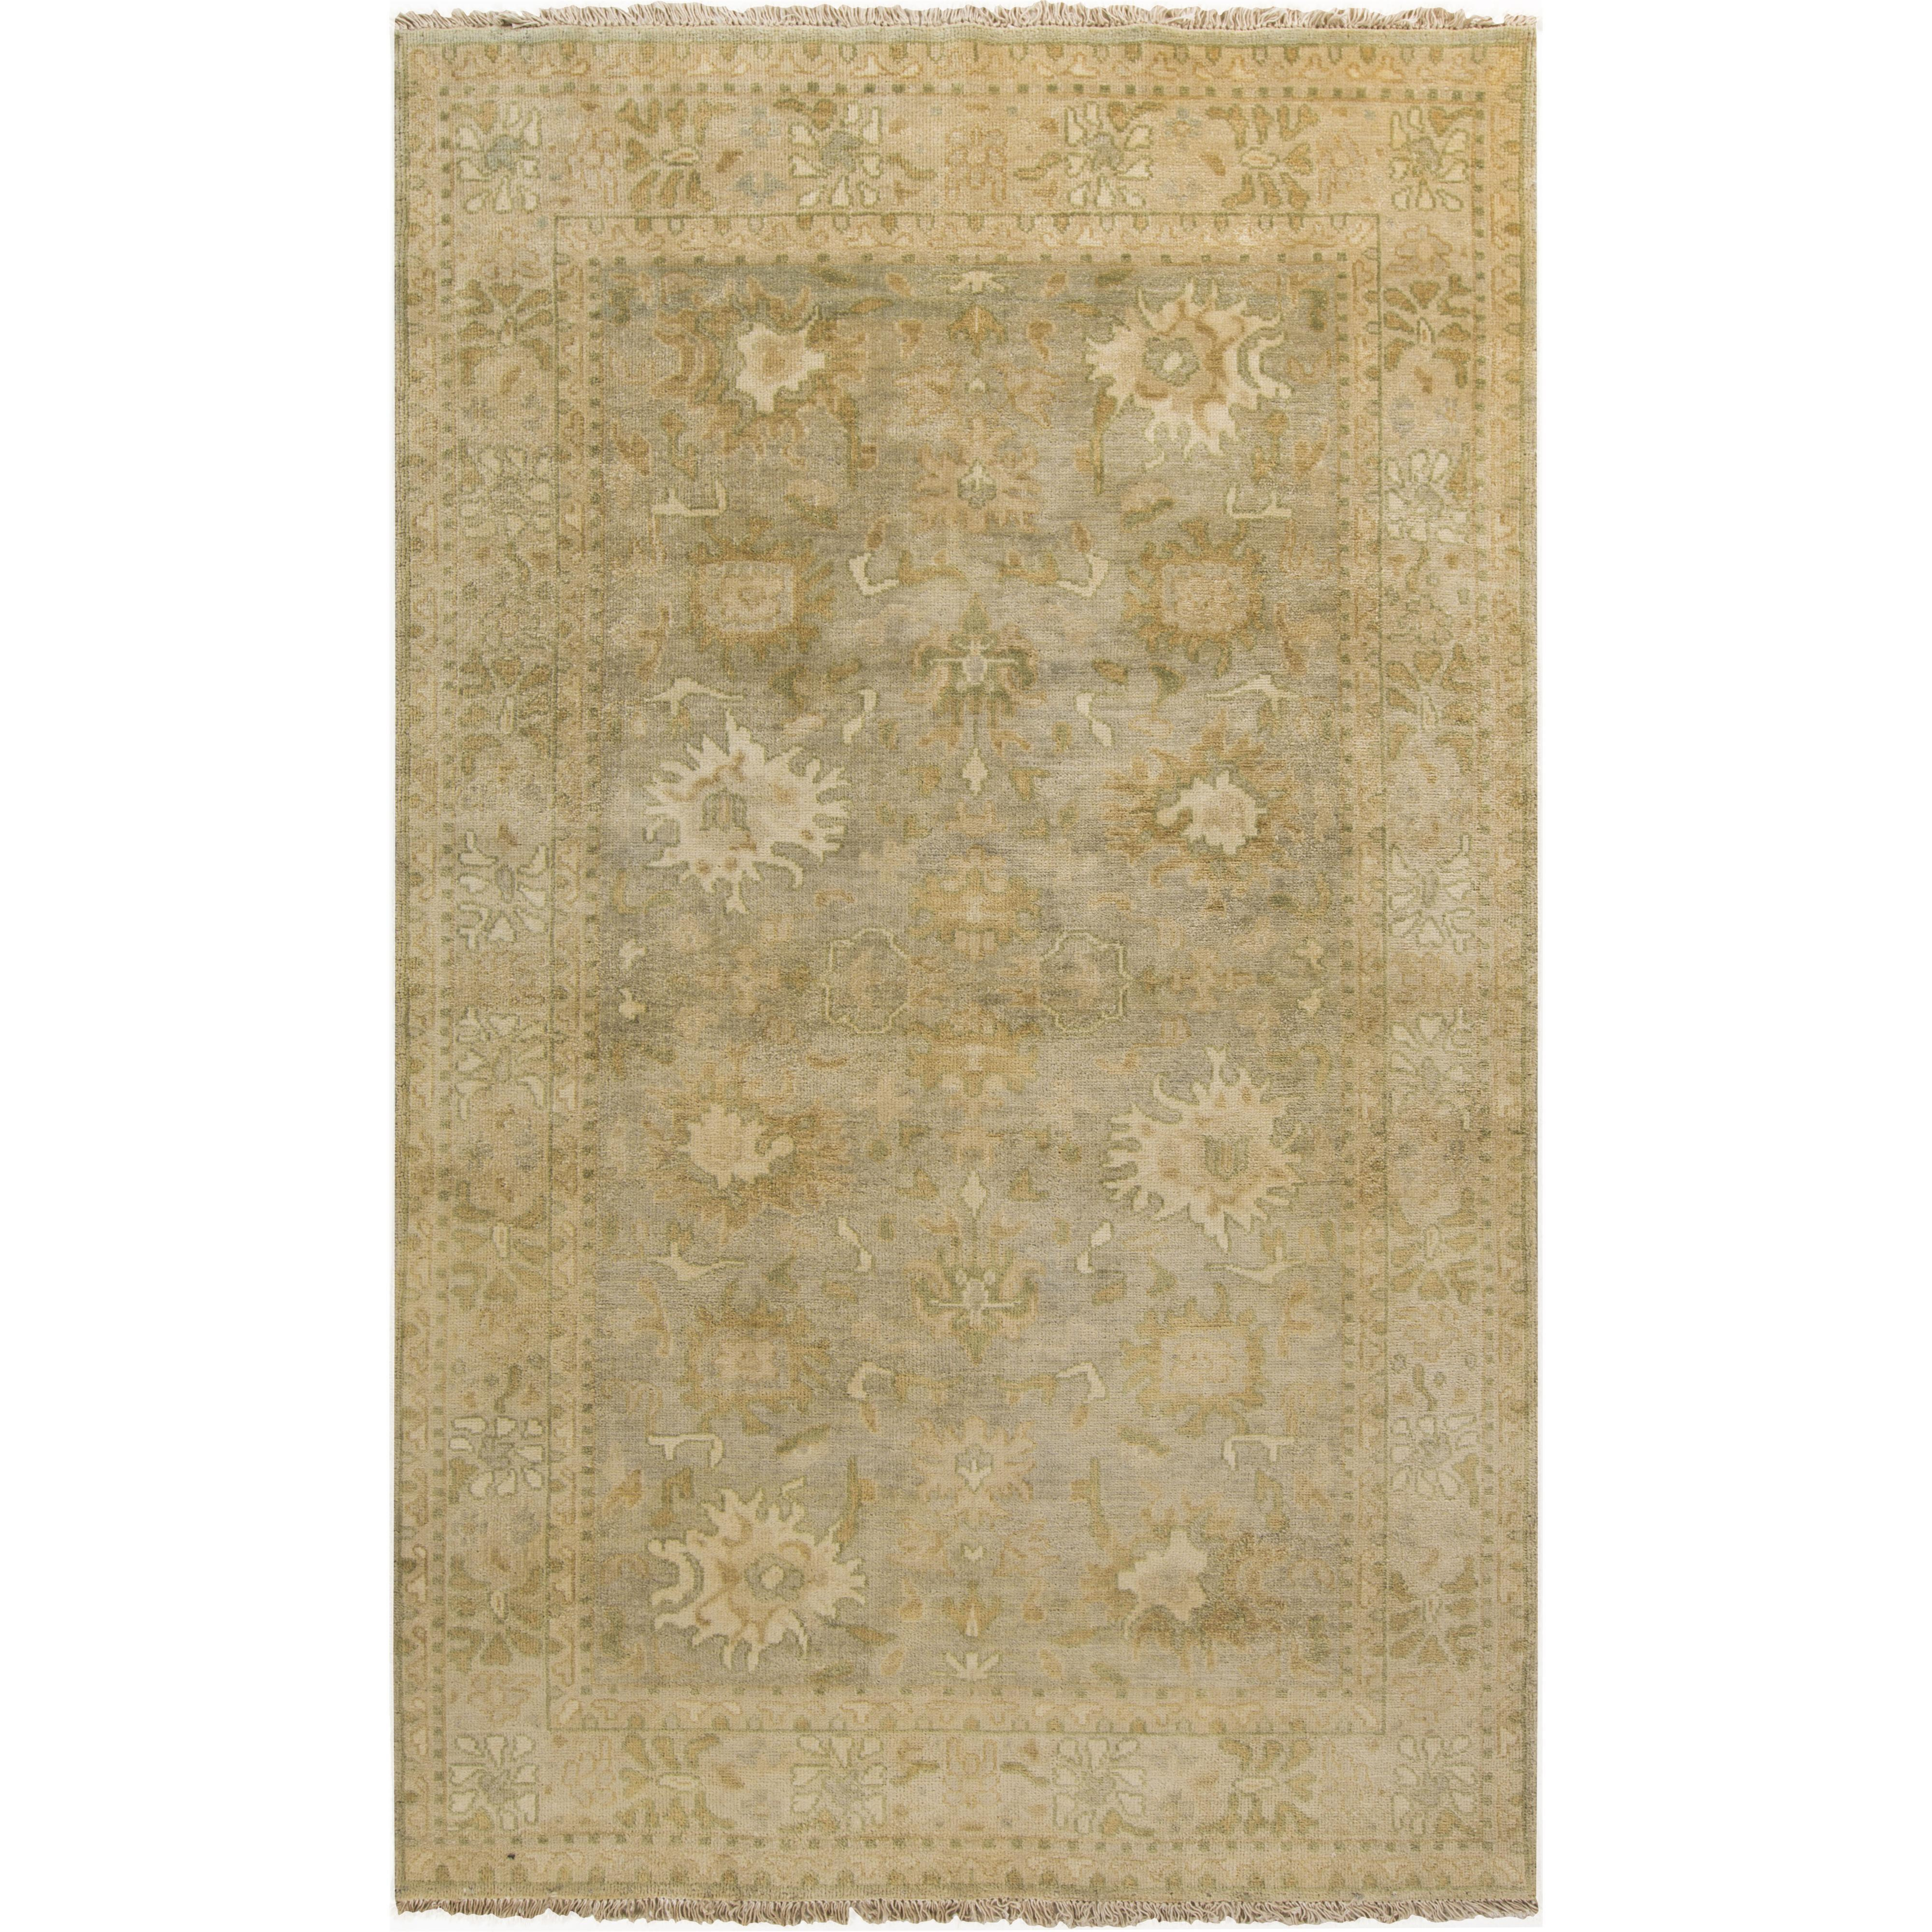 Surya Rugs Hillcrest 9' x 13' - Item Number: HIL9024-913